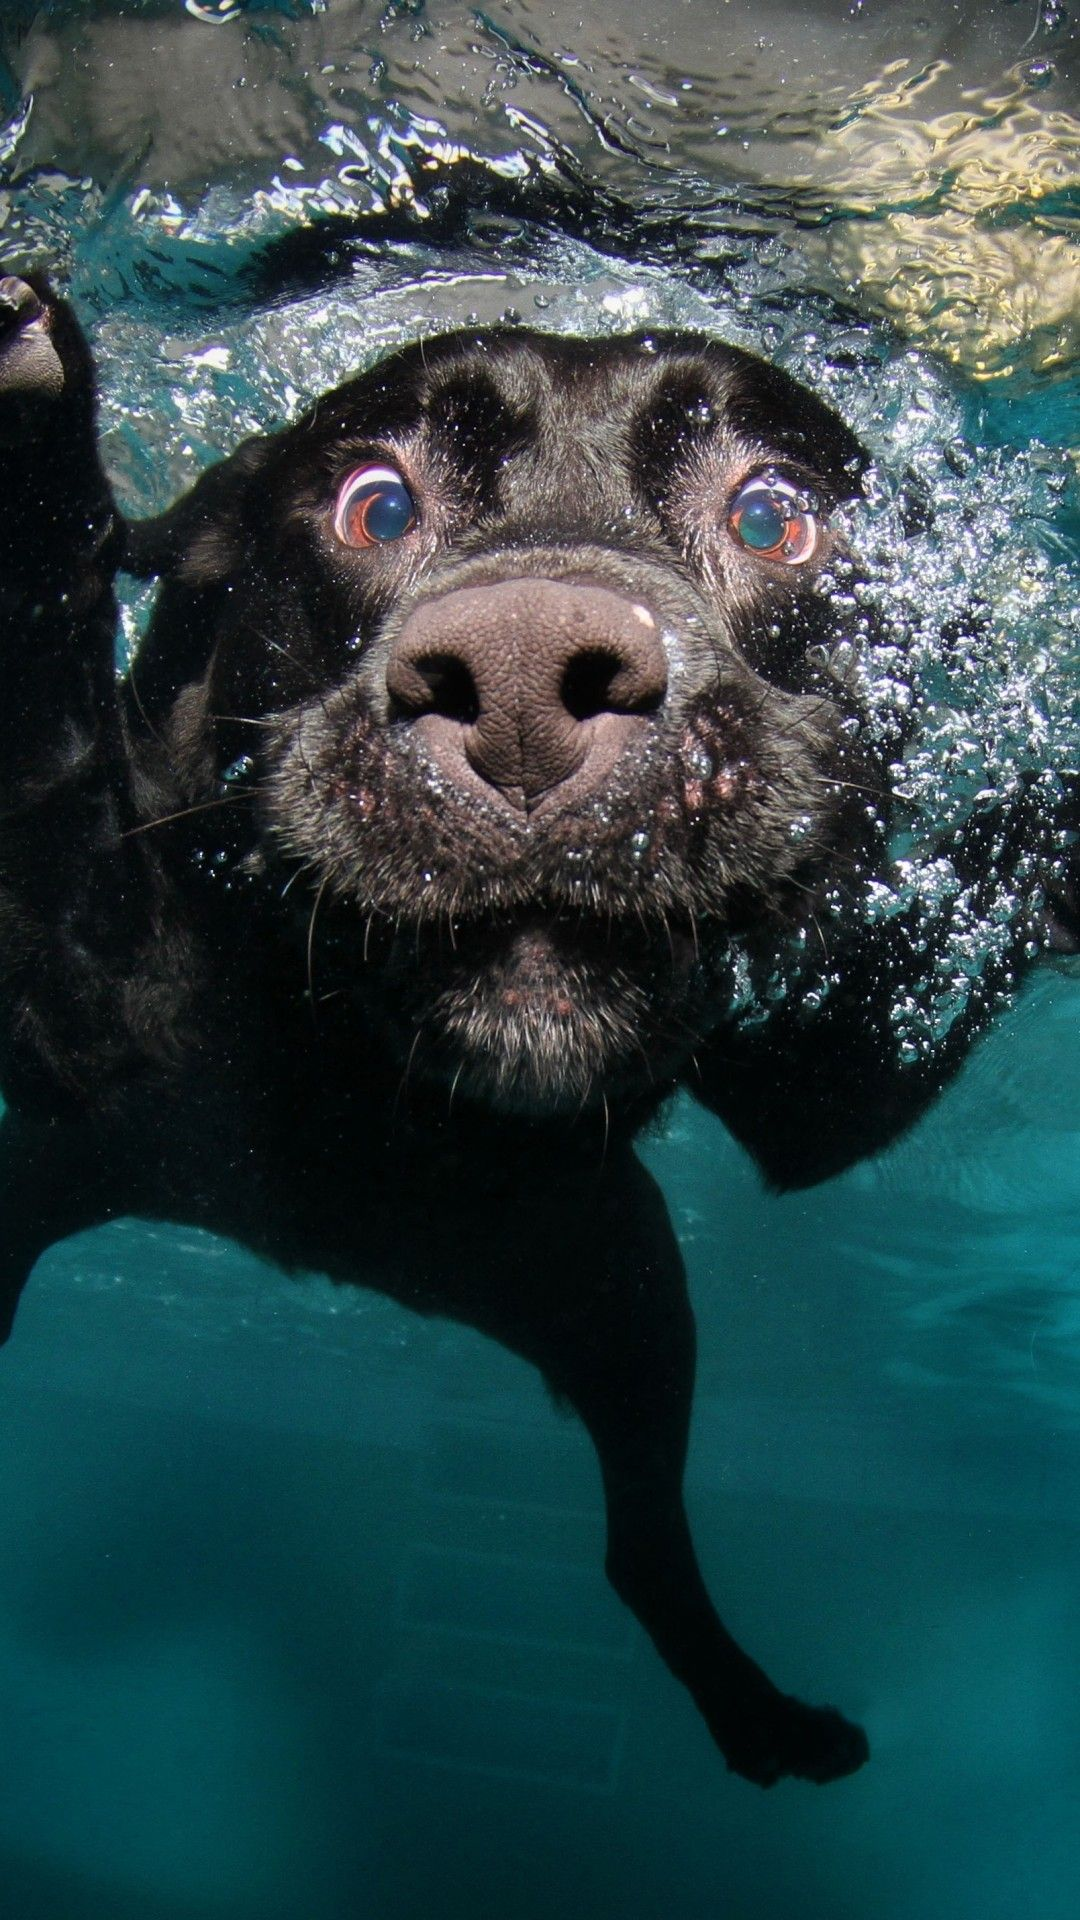 Dog Wallpaper Mobile Dog Wallpapers Underwater Dogs Cute Baby